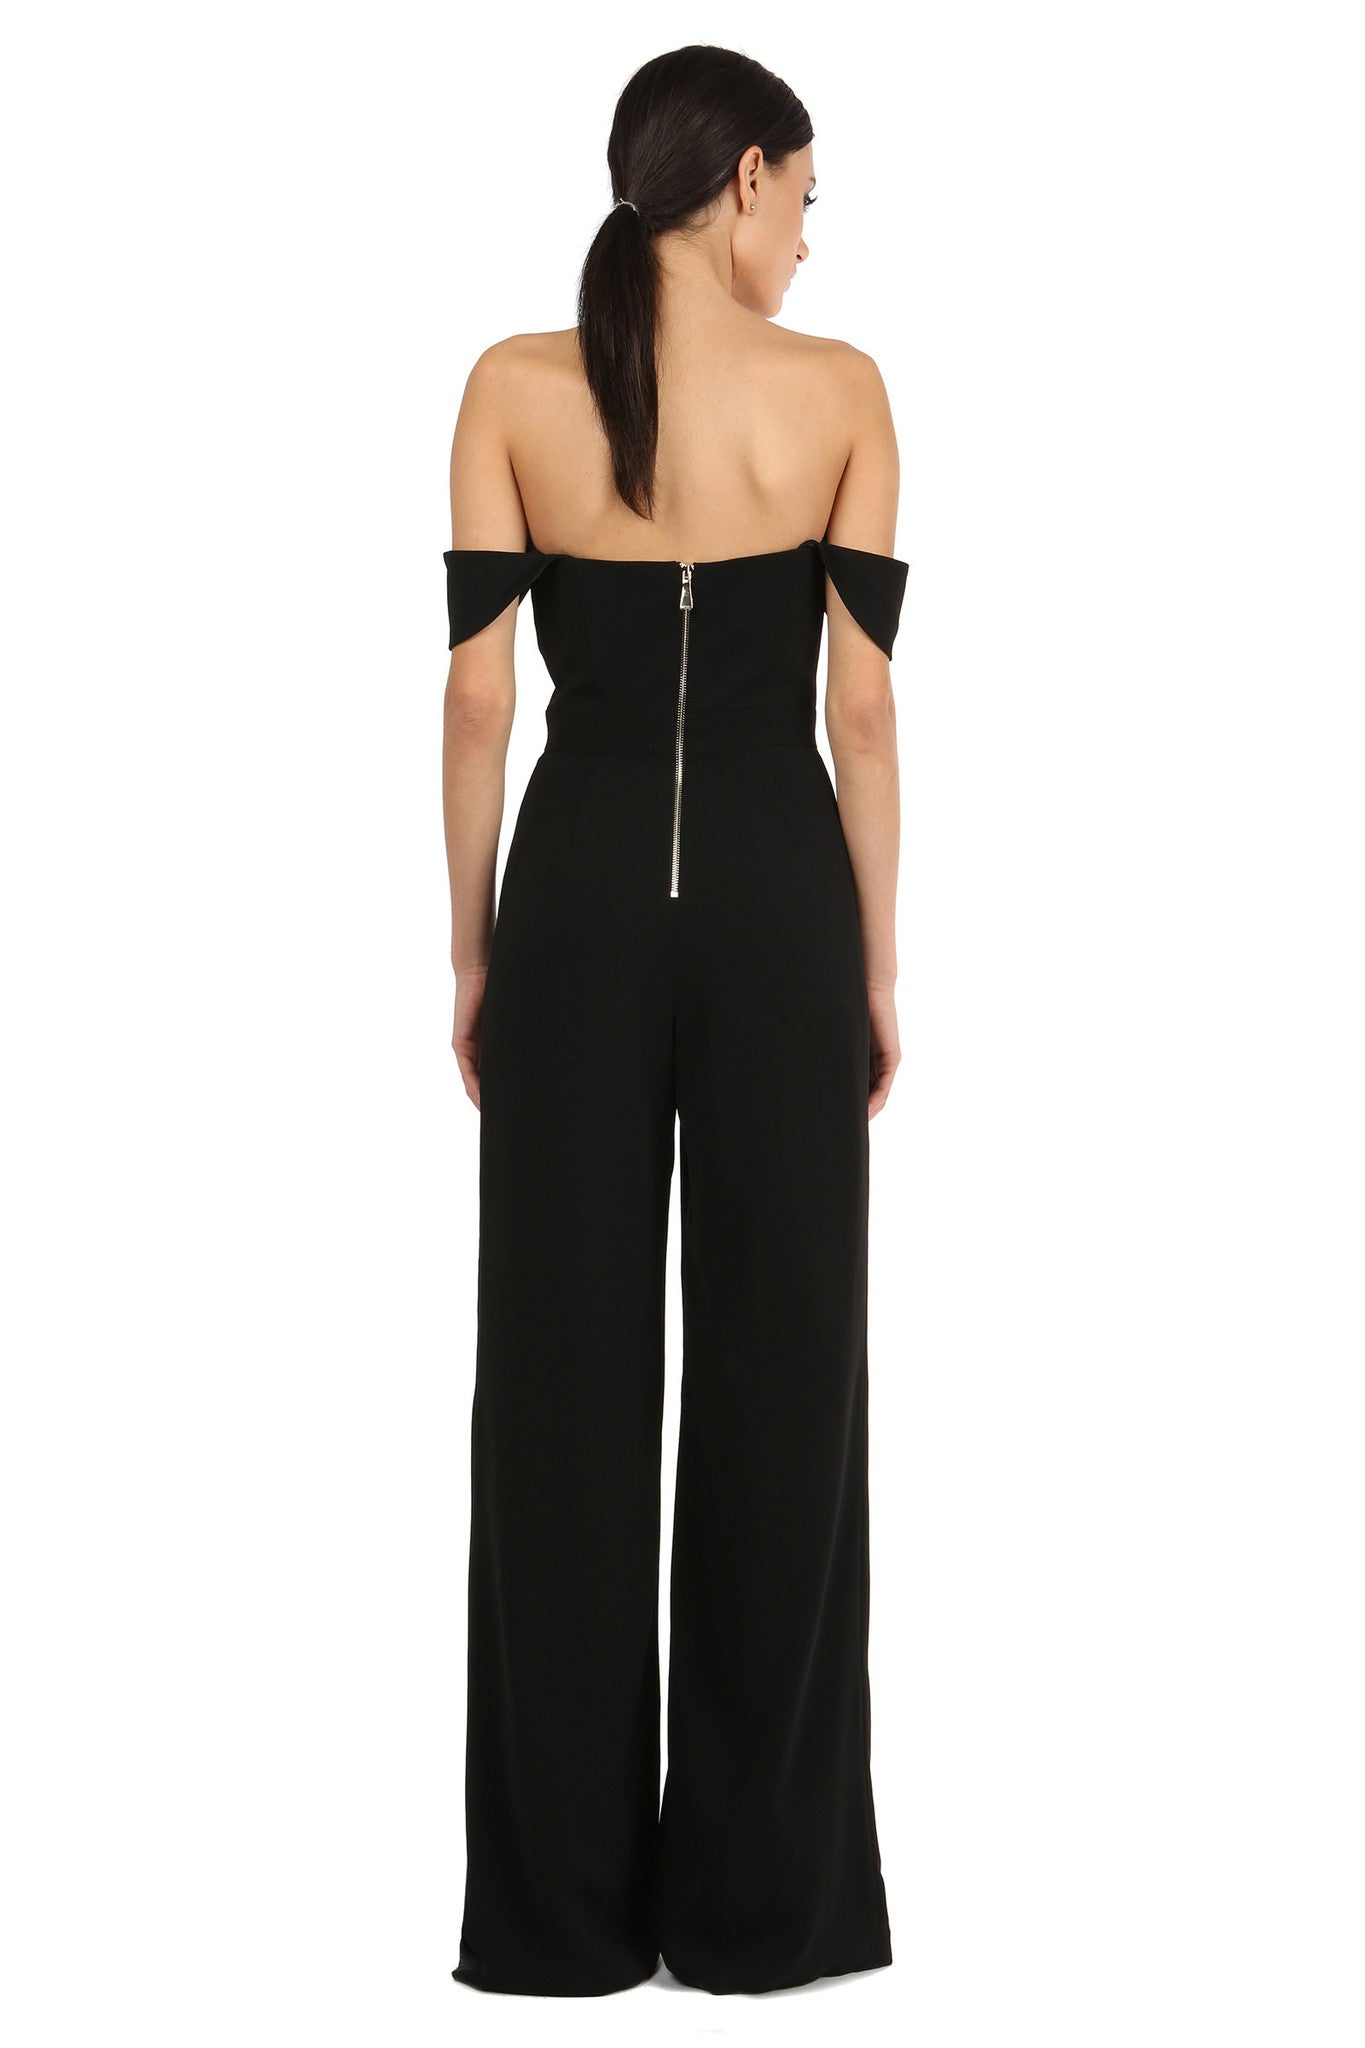 Jay Godfrey Black Off-the-Shoulder Romper - Back View